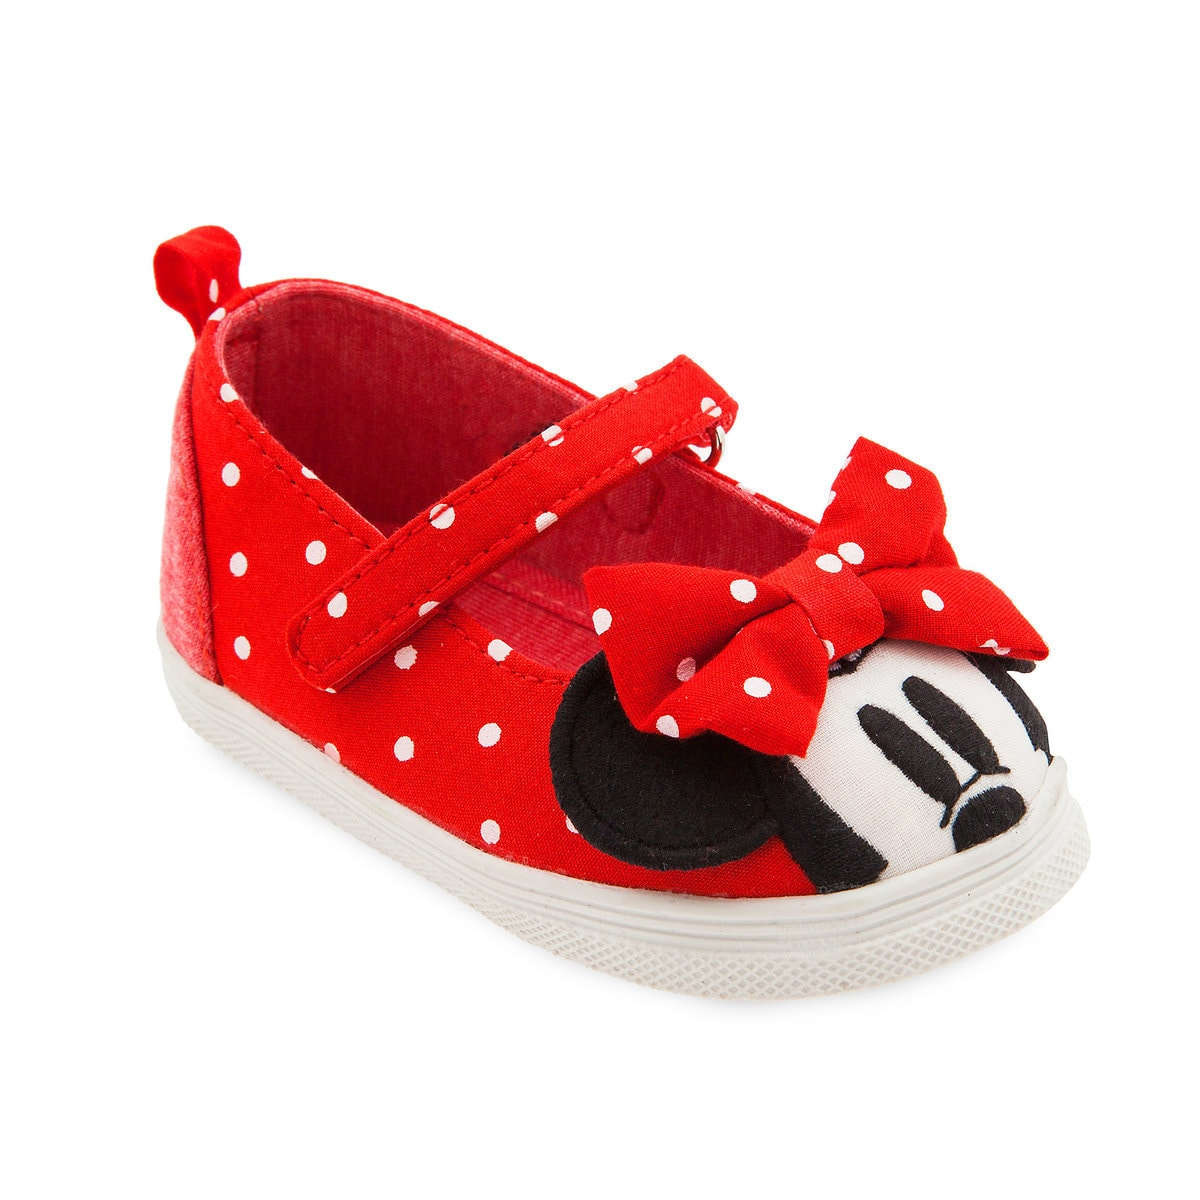 792f50d18936 Product Image of Minnie Mouse Shoes for Baby   1